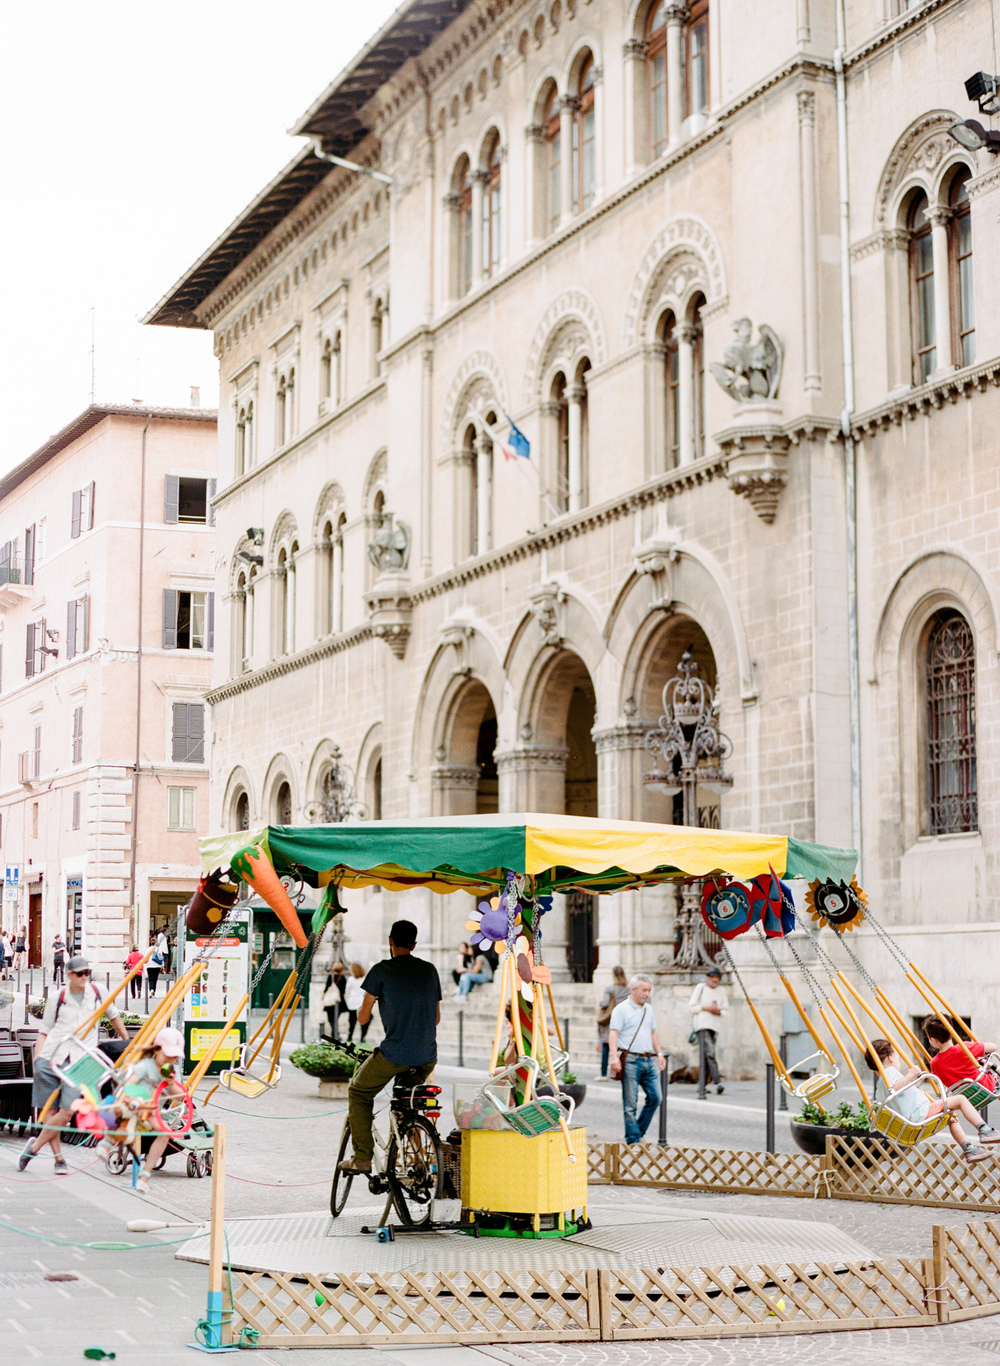 A kid's paradise: the bike merry-go-round in Perugia, Italy.  And yes, we did this...again and again and again!